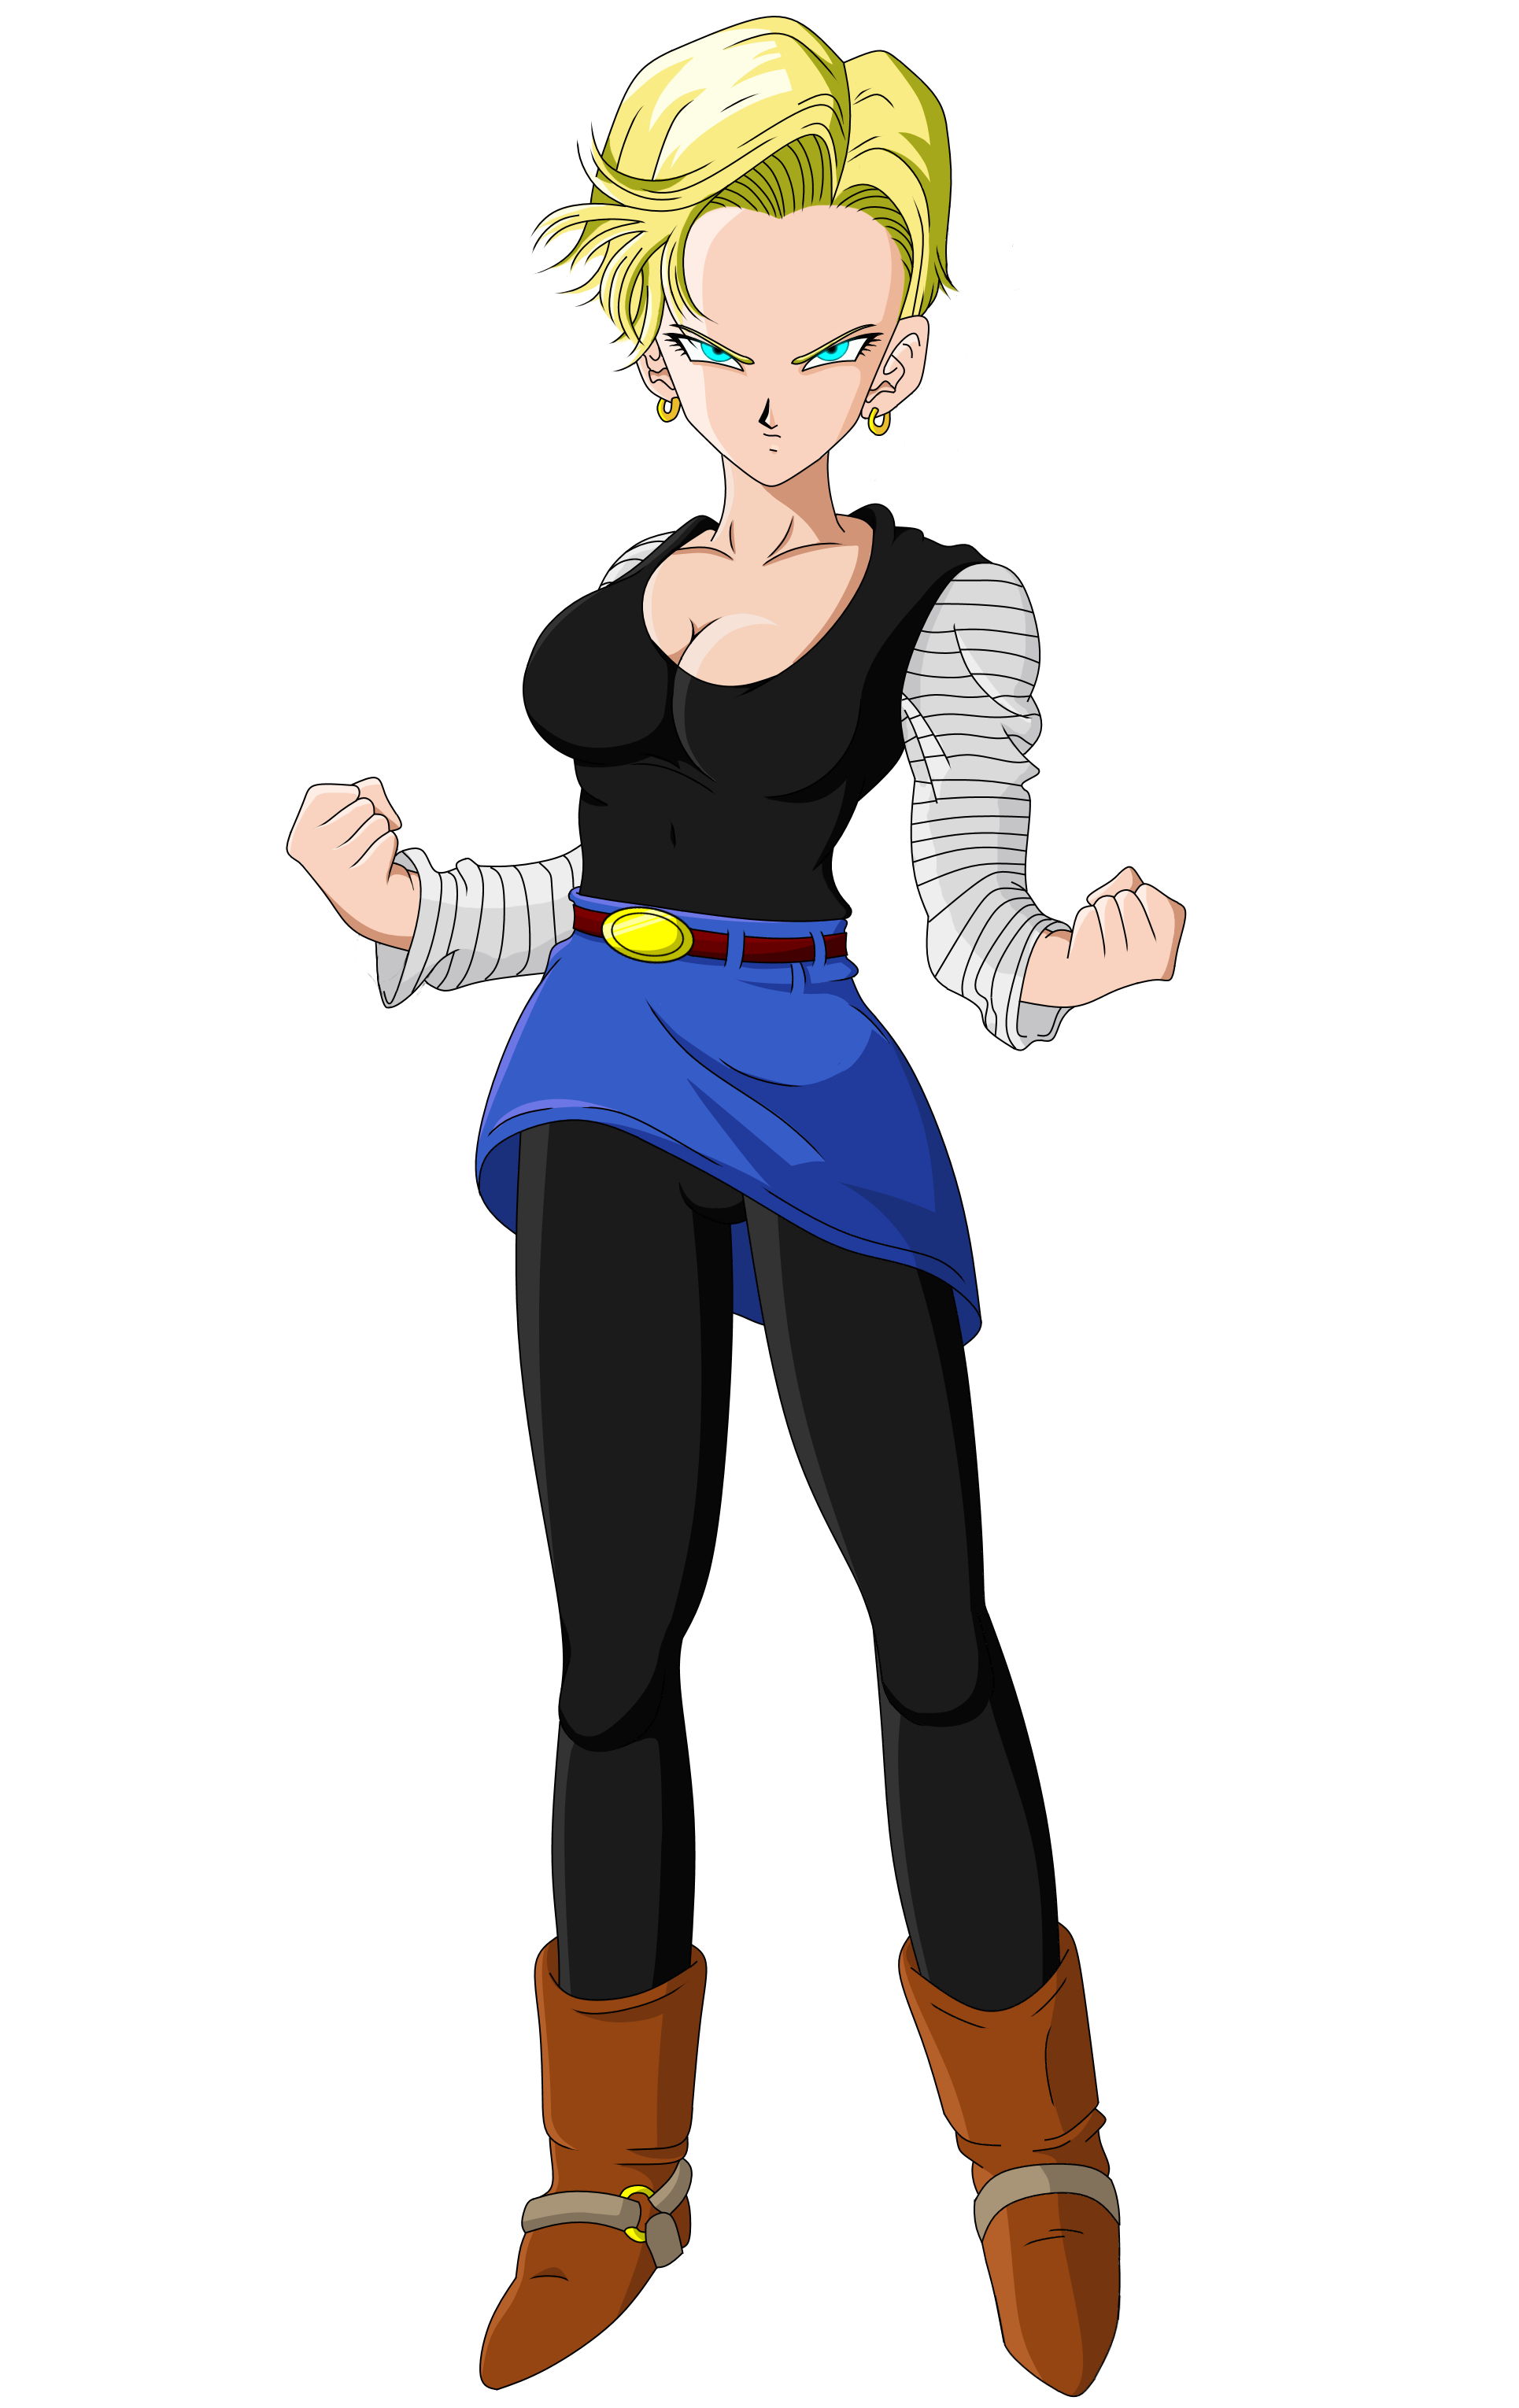 Android 18 dragon ball z short haired by scottishsocialist on deviantart - Dragon ball zc 18 ...